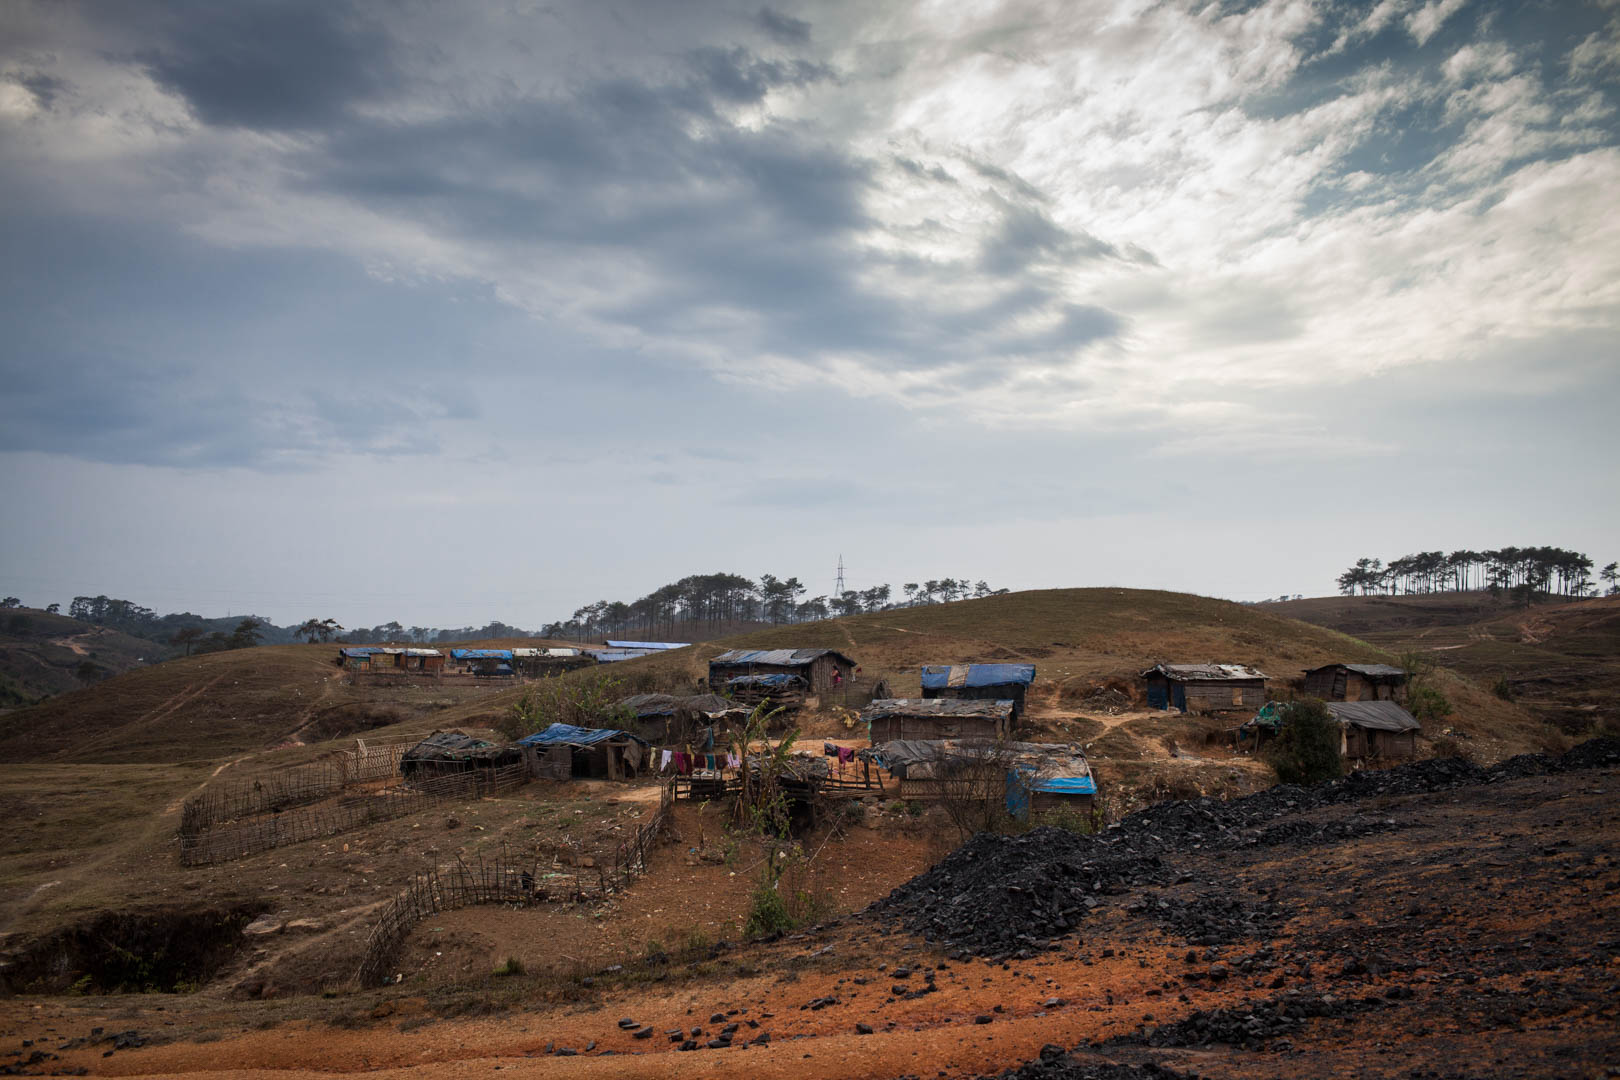 A small village of coal miners in a remote area in Meghalaya. With their major disconnection to any kind of entertainment or education, the miners and their families turn to drinking Whisky in their leisure time to distract themselves.